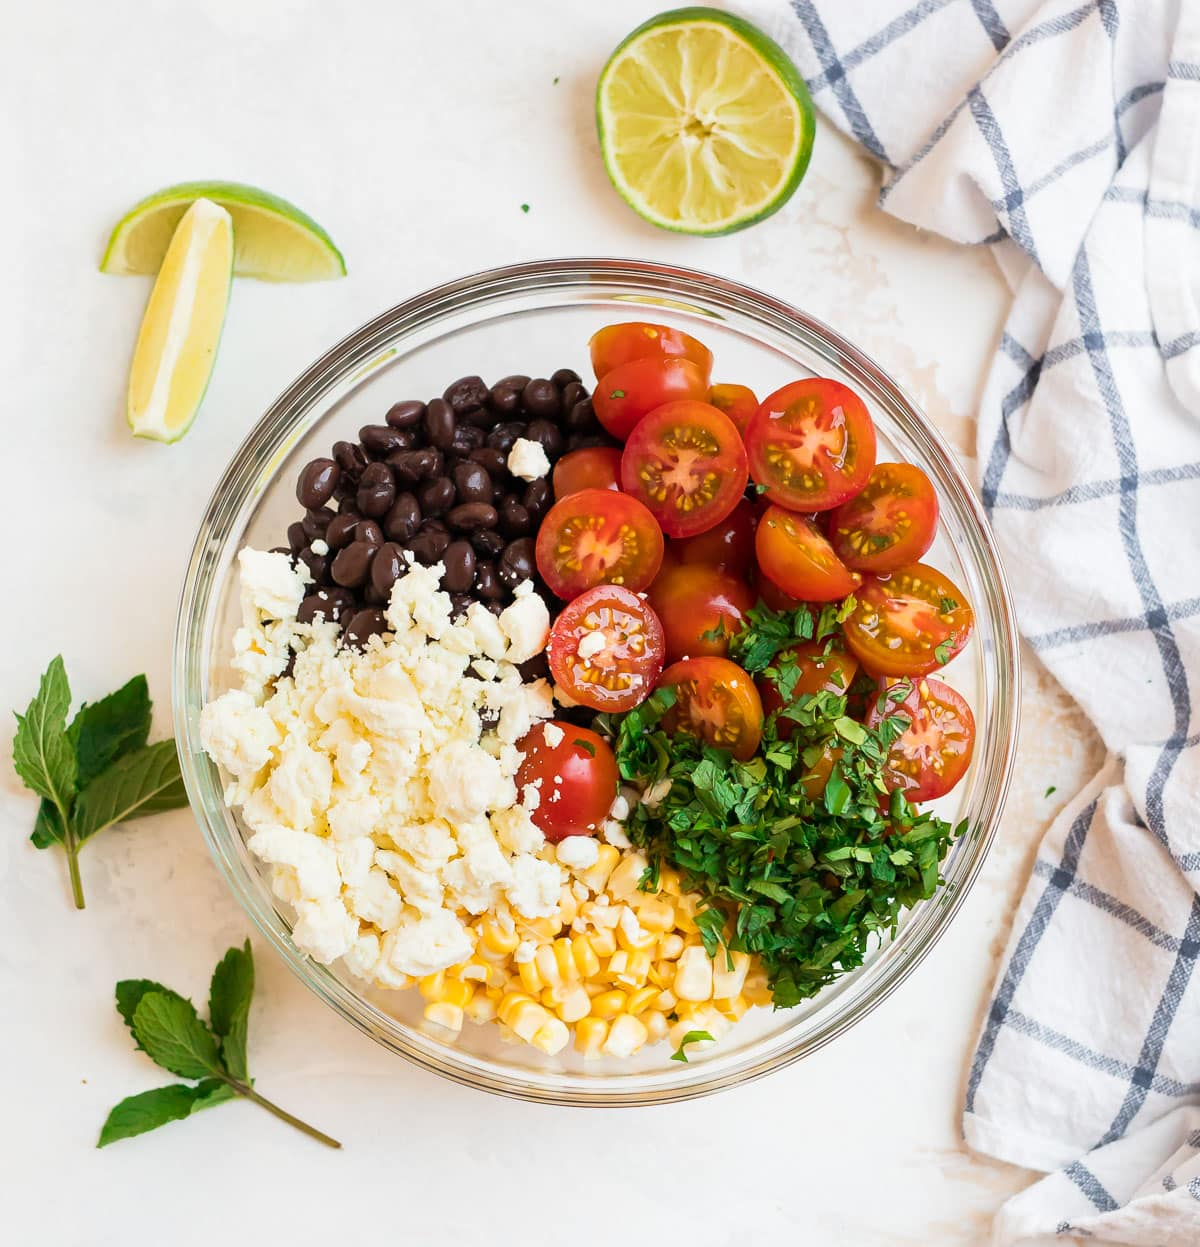 Feta, black beans, tomatoes, herbs, and corn in a bowl